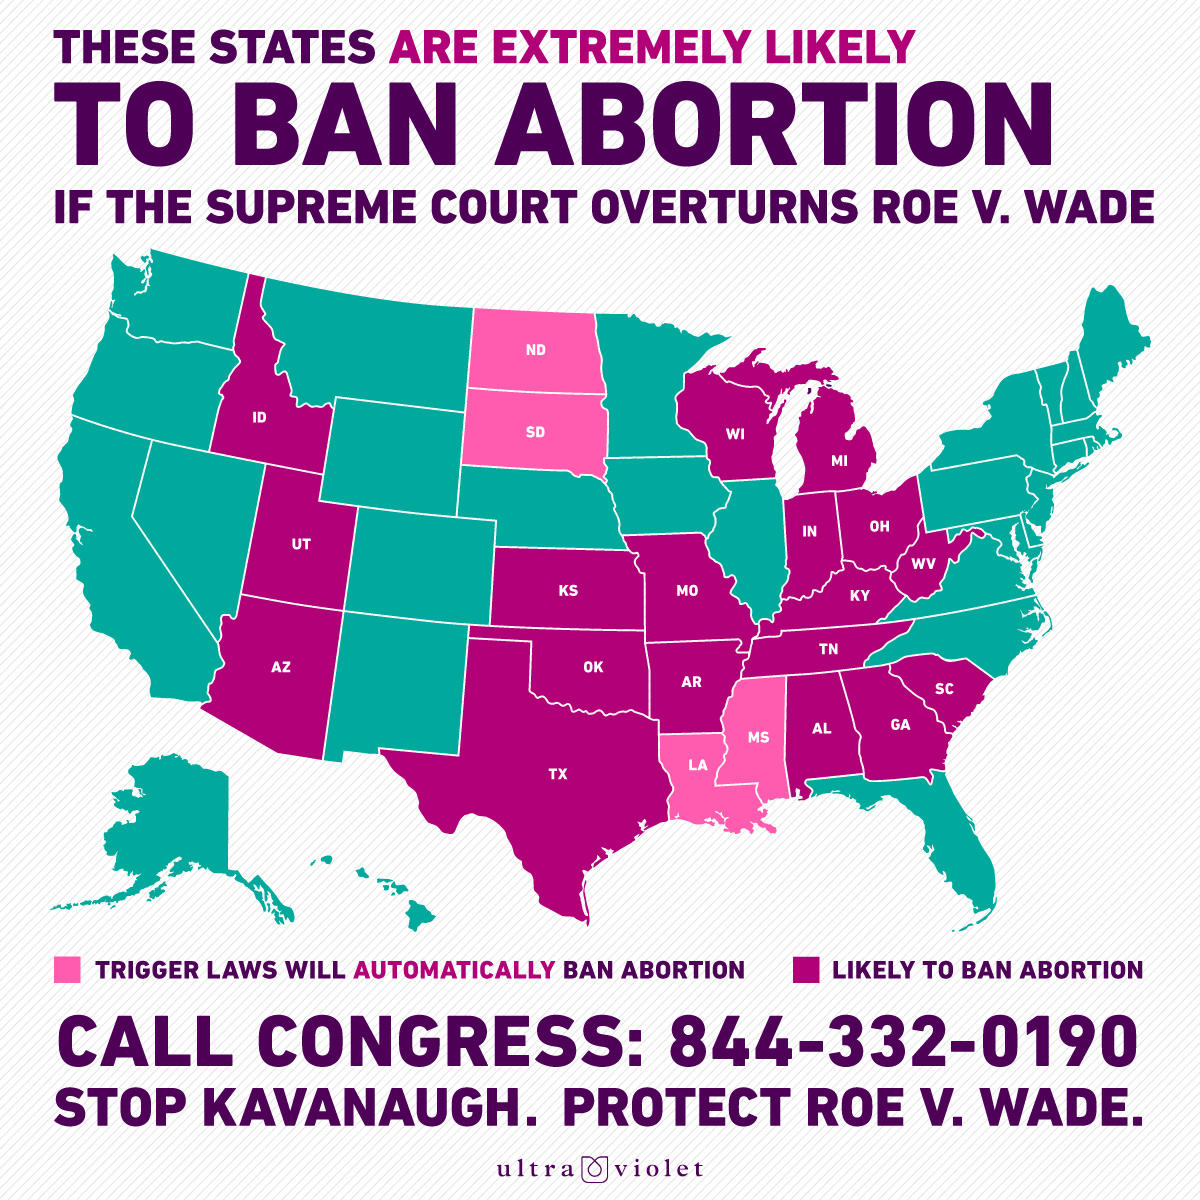 THIS is what overturning Roe v. Wade means